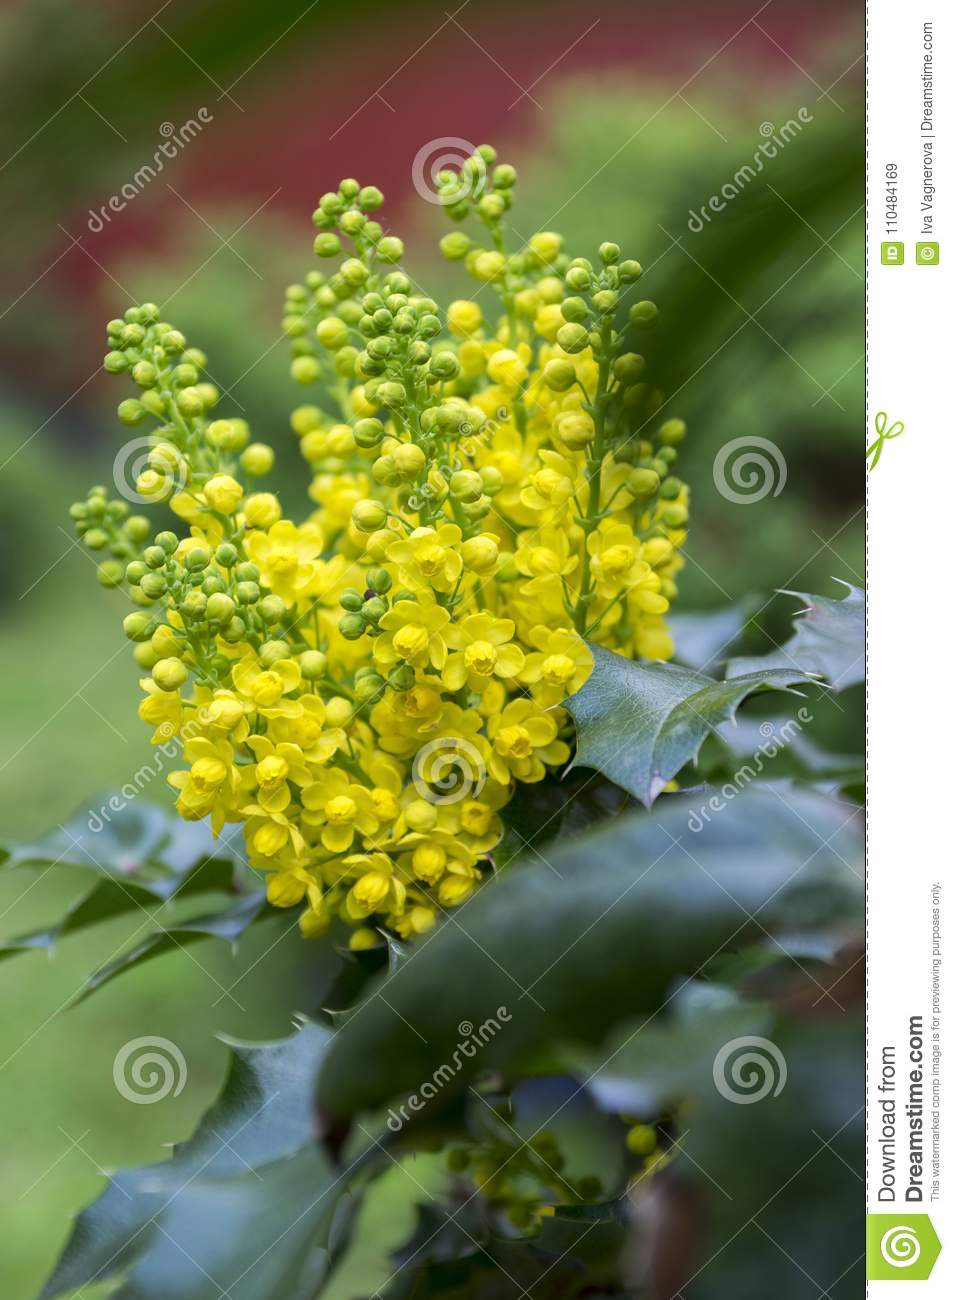 Mahonia Aquifolium Shrub With Yellow Flower Stock Image Image Of